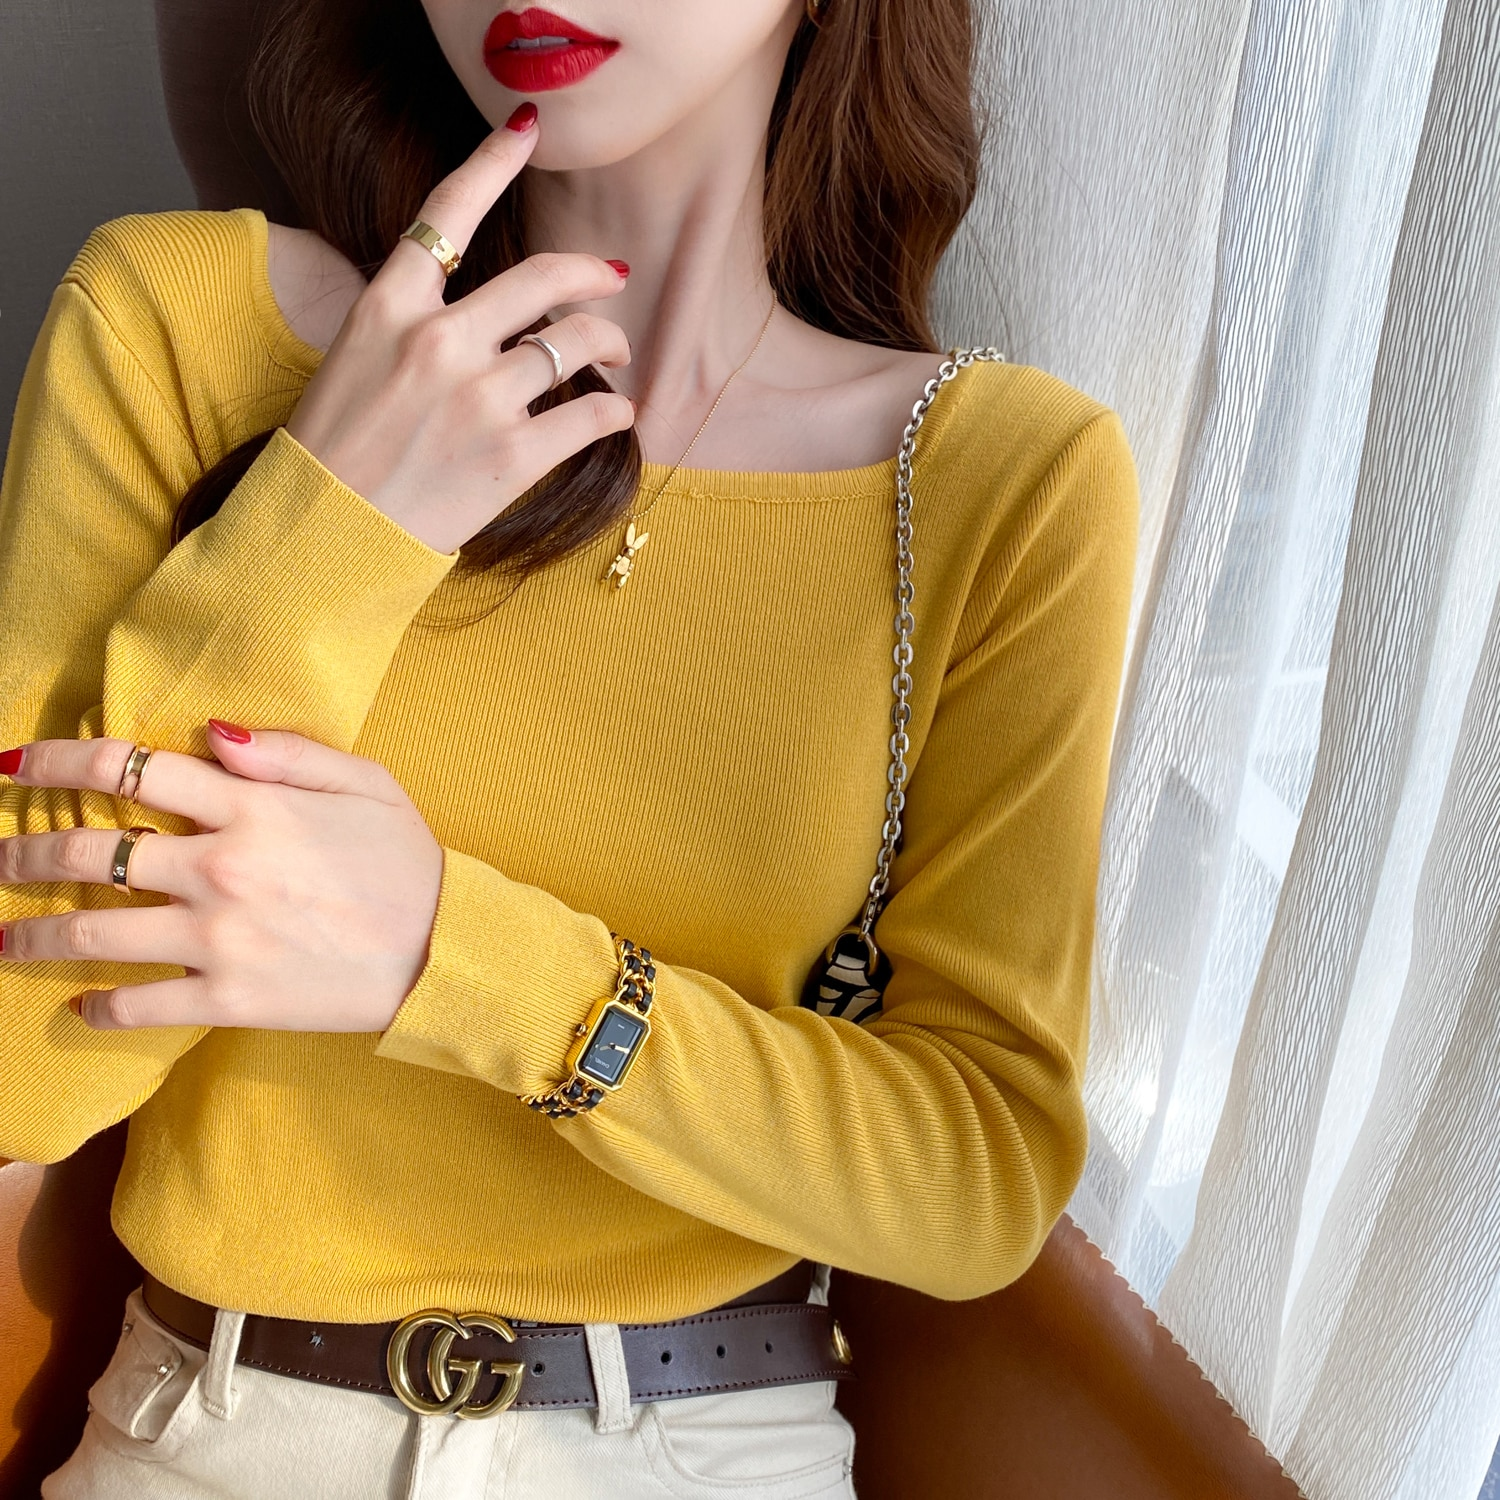 Undershirt Women's Autumn and Winter 2020 New Spring and Autumn All-Match Square Collar Sweater Inne